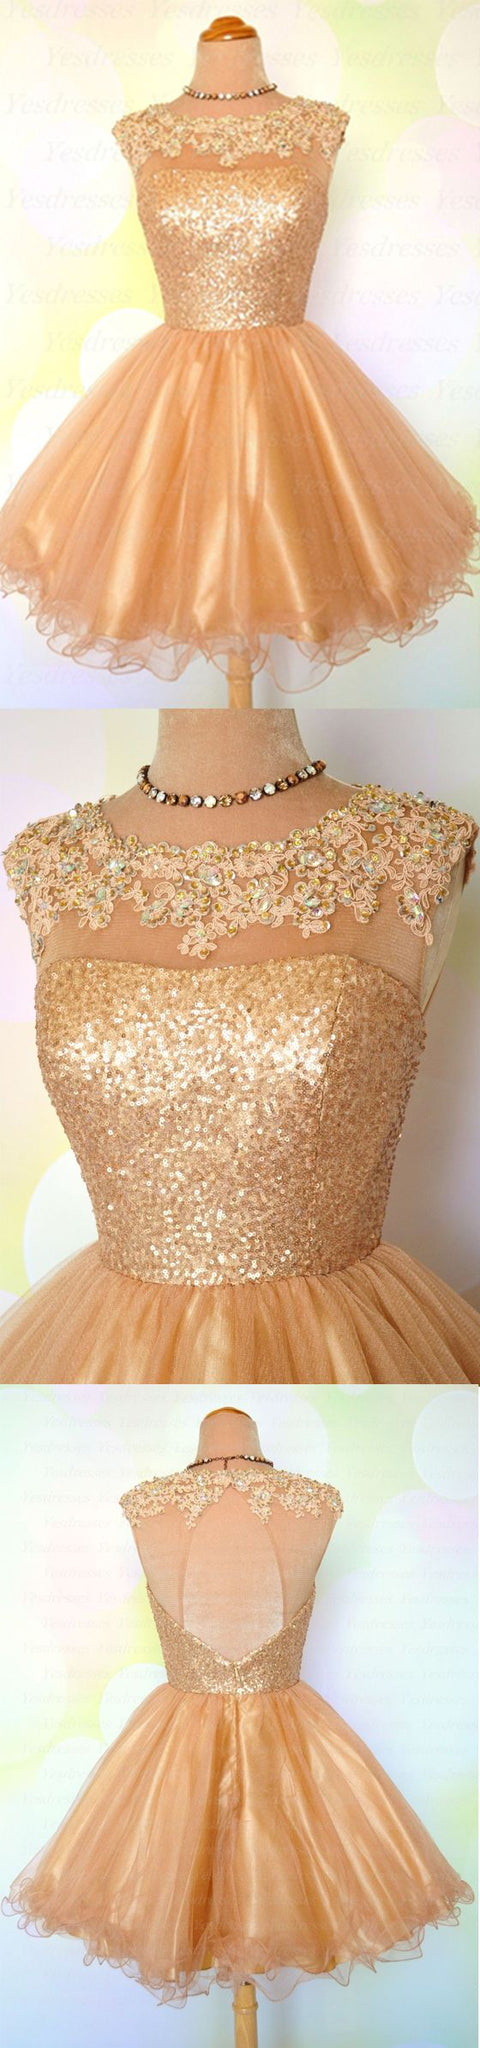 Gold Homecoming Dress, Sequin Homecoming Dress, Open Back Homecoming Dress, Scoop Neck Homecoming Dress, Cheap Homecoming Dress,B0422